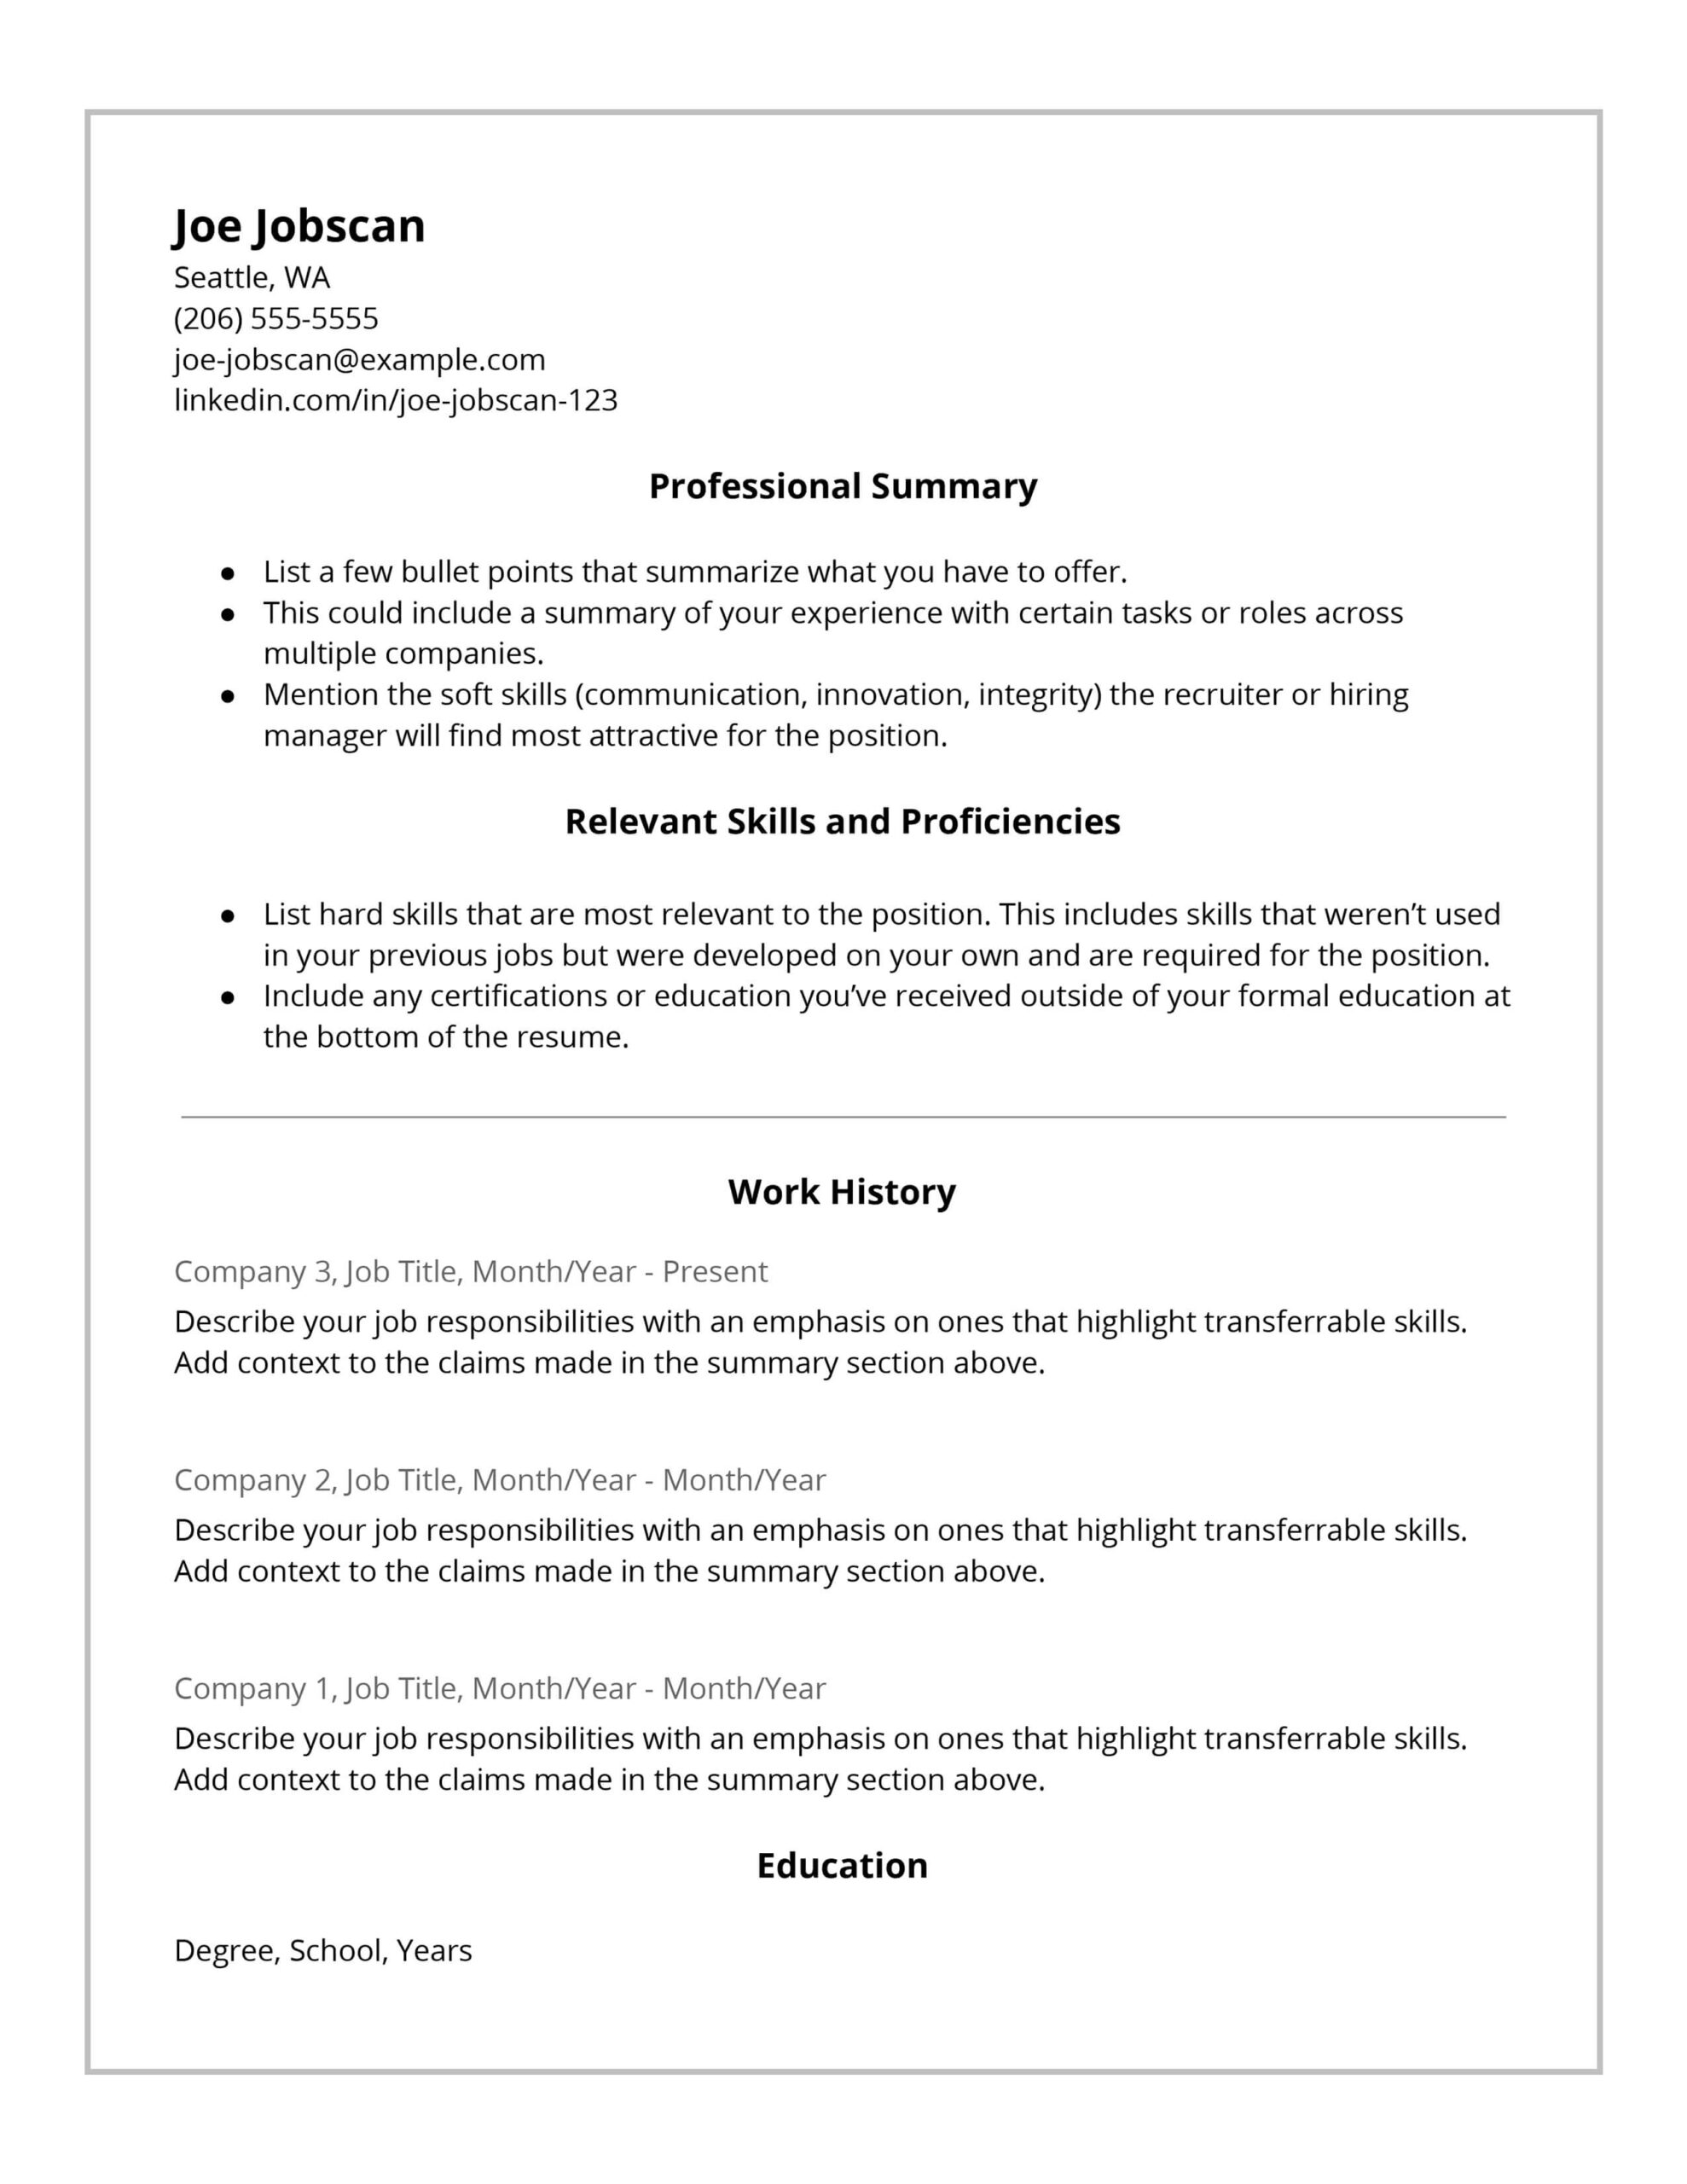 recruiters hate the functional resume format here skills based template hybrid translator Resume Functional Skills Based Resume Template